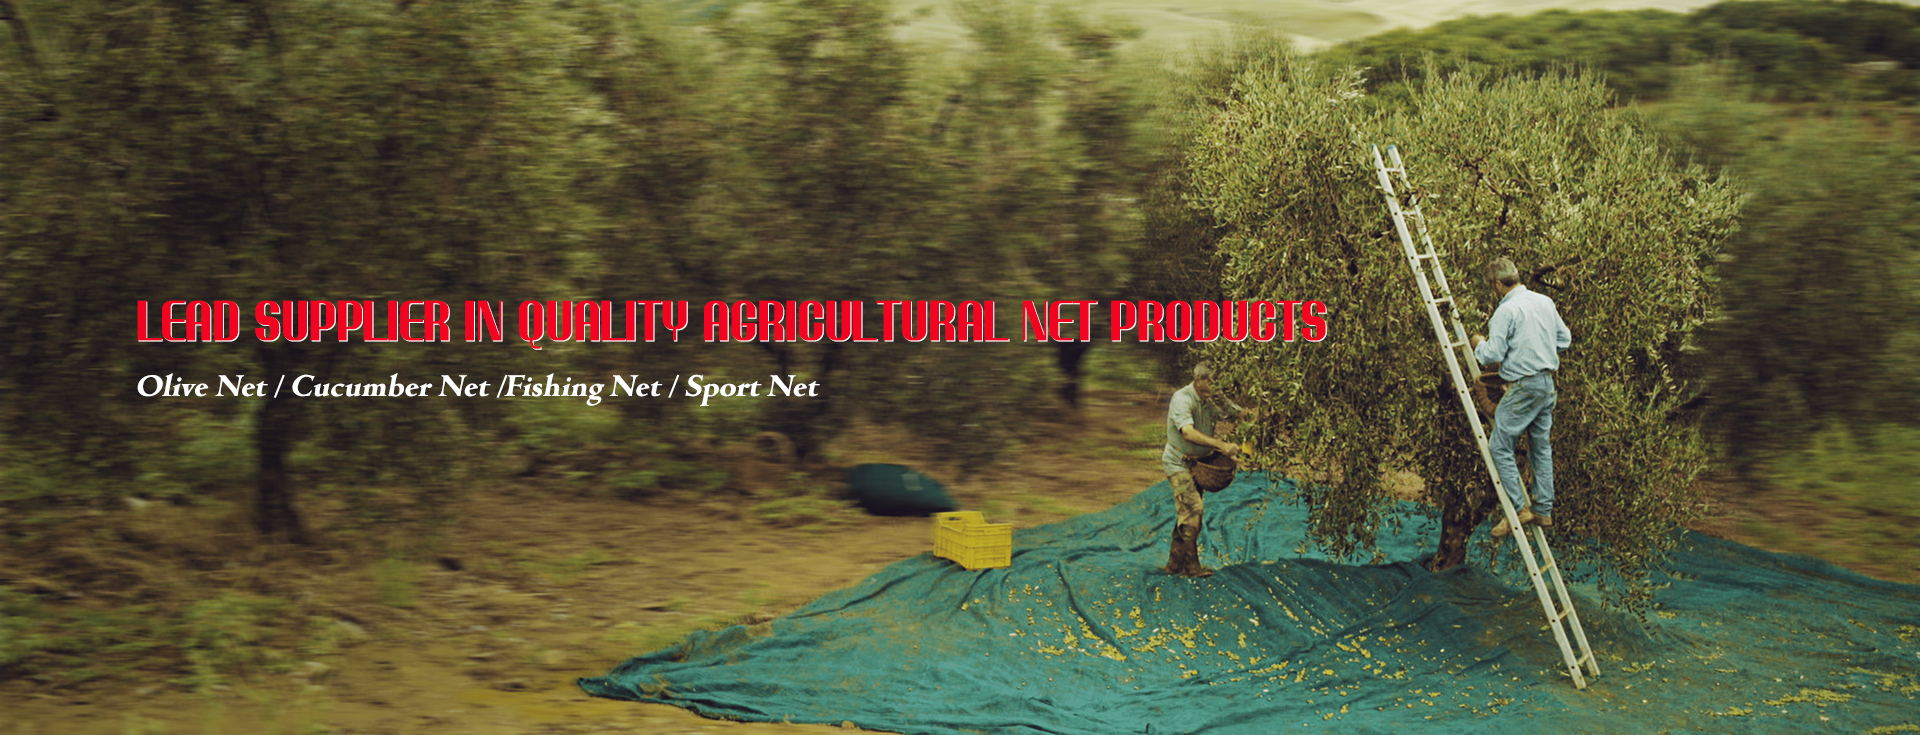 Shade Net / Plant support Net /Fishing Net / Sport Net